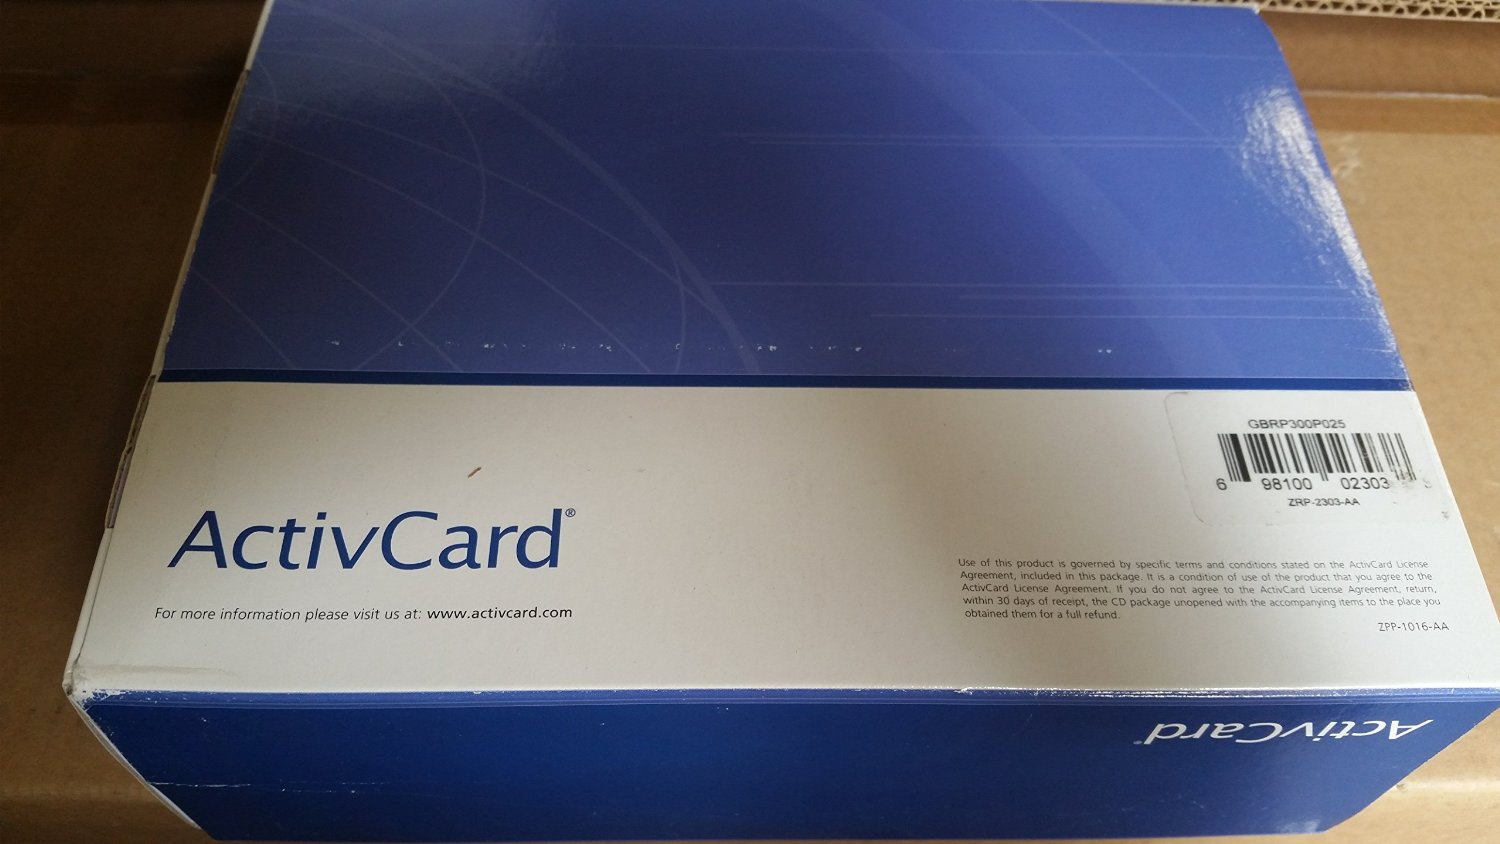 ACTIVIDENTITY SMART CARD READER WINDOWS 8.1 DRIVERS DOWNLOAD